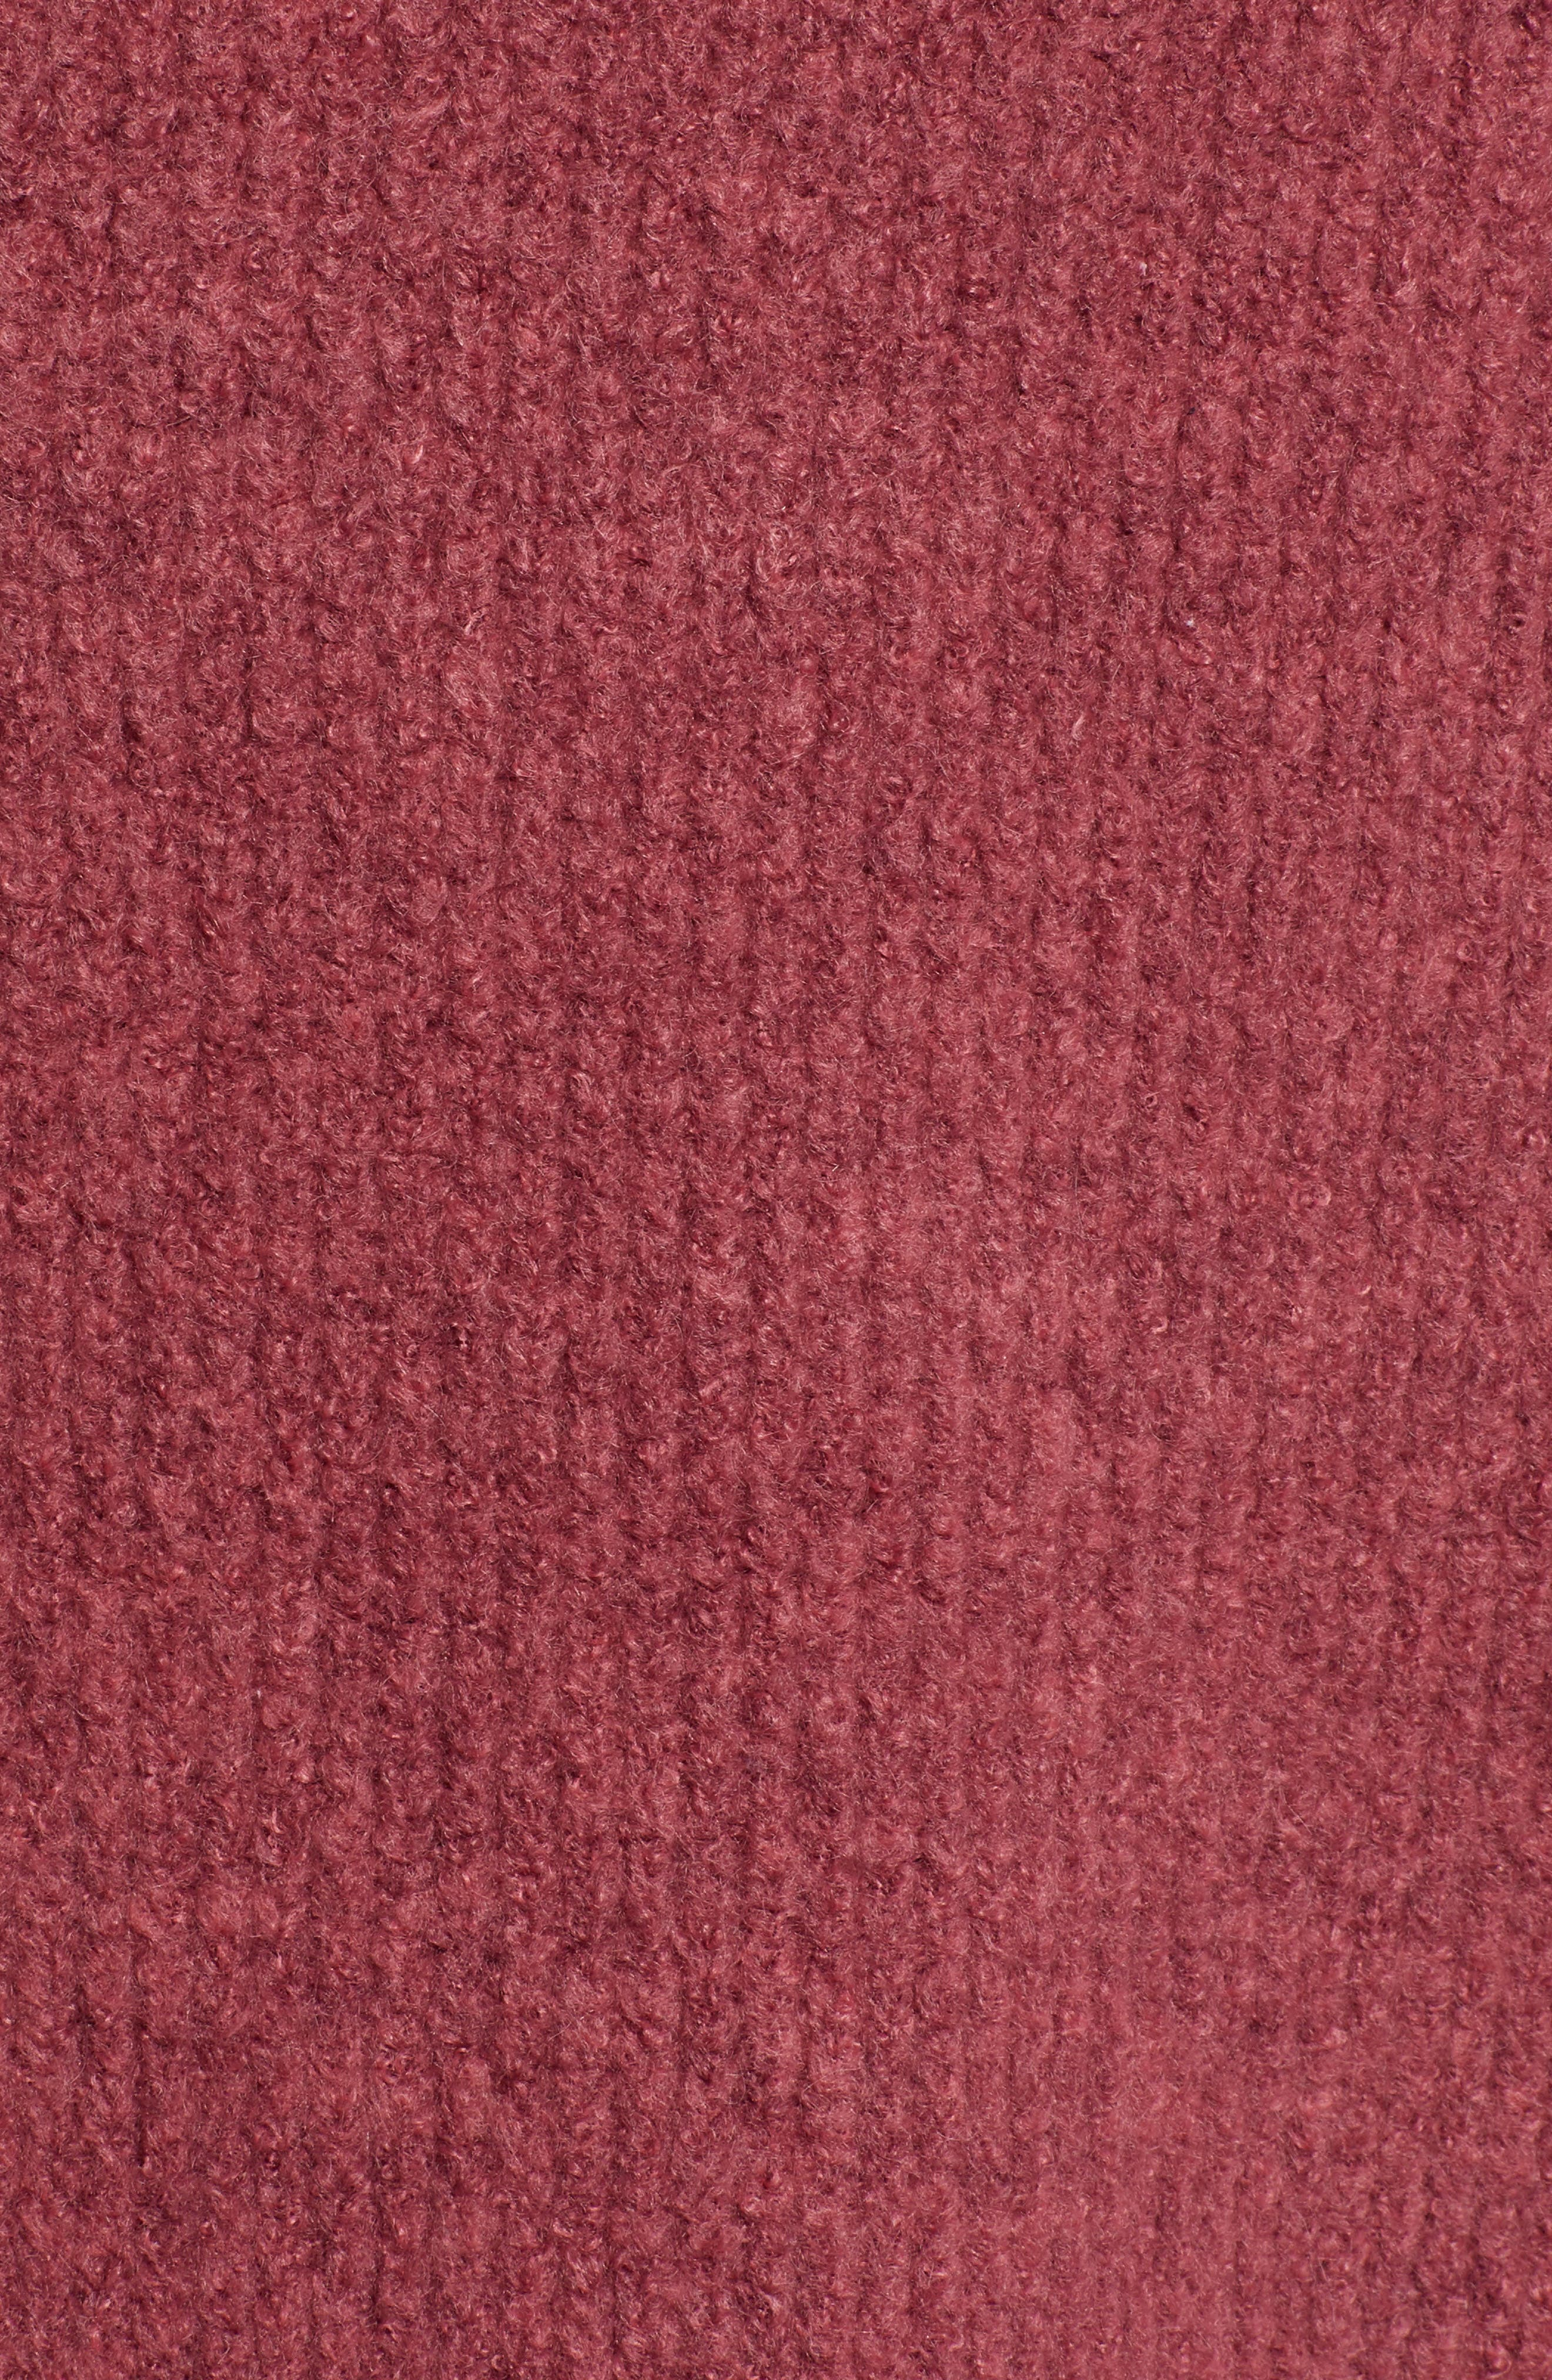 Fuzzy Oversize Sweater,                             Alternate thumbnail 5, color,                             BURGUNDY THORN